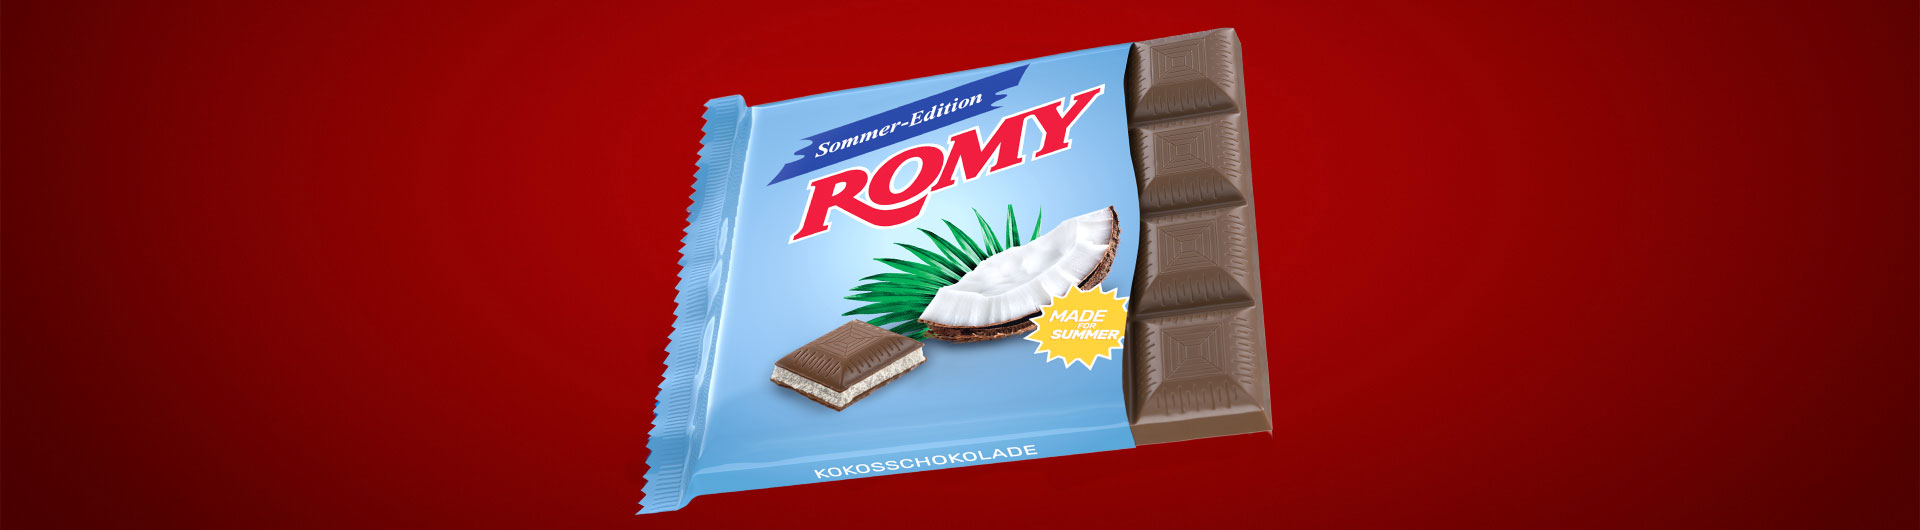 ROMY – the Summer Edition